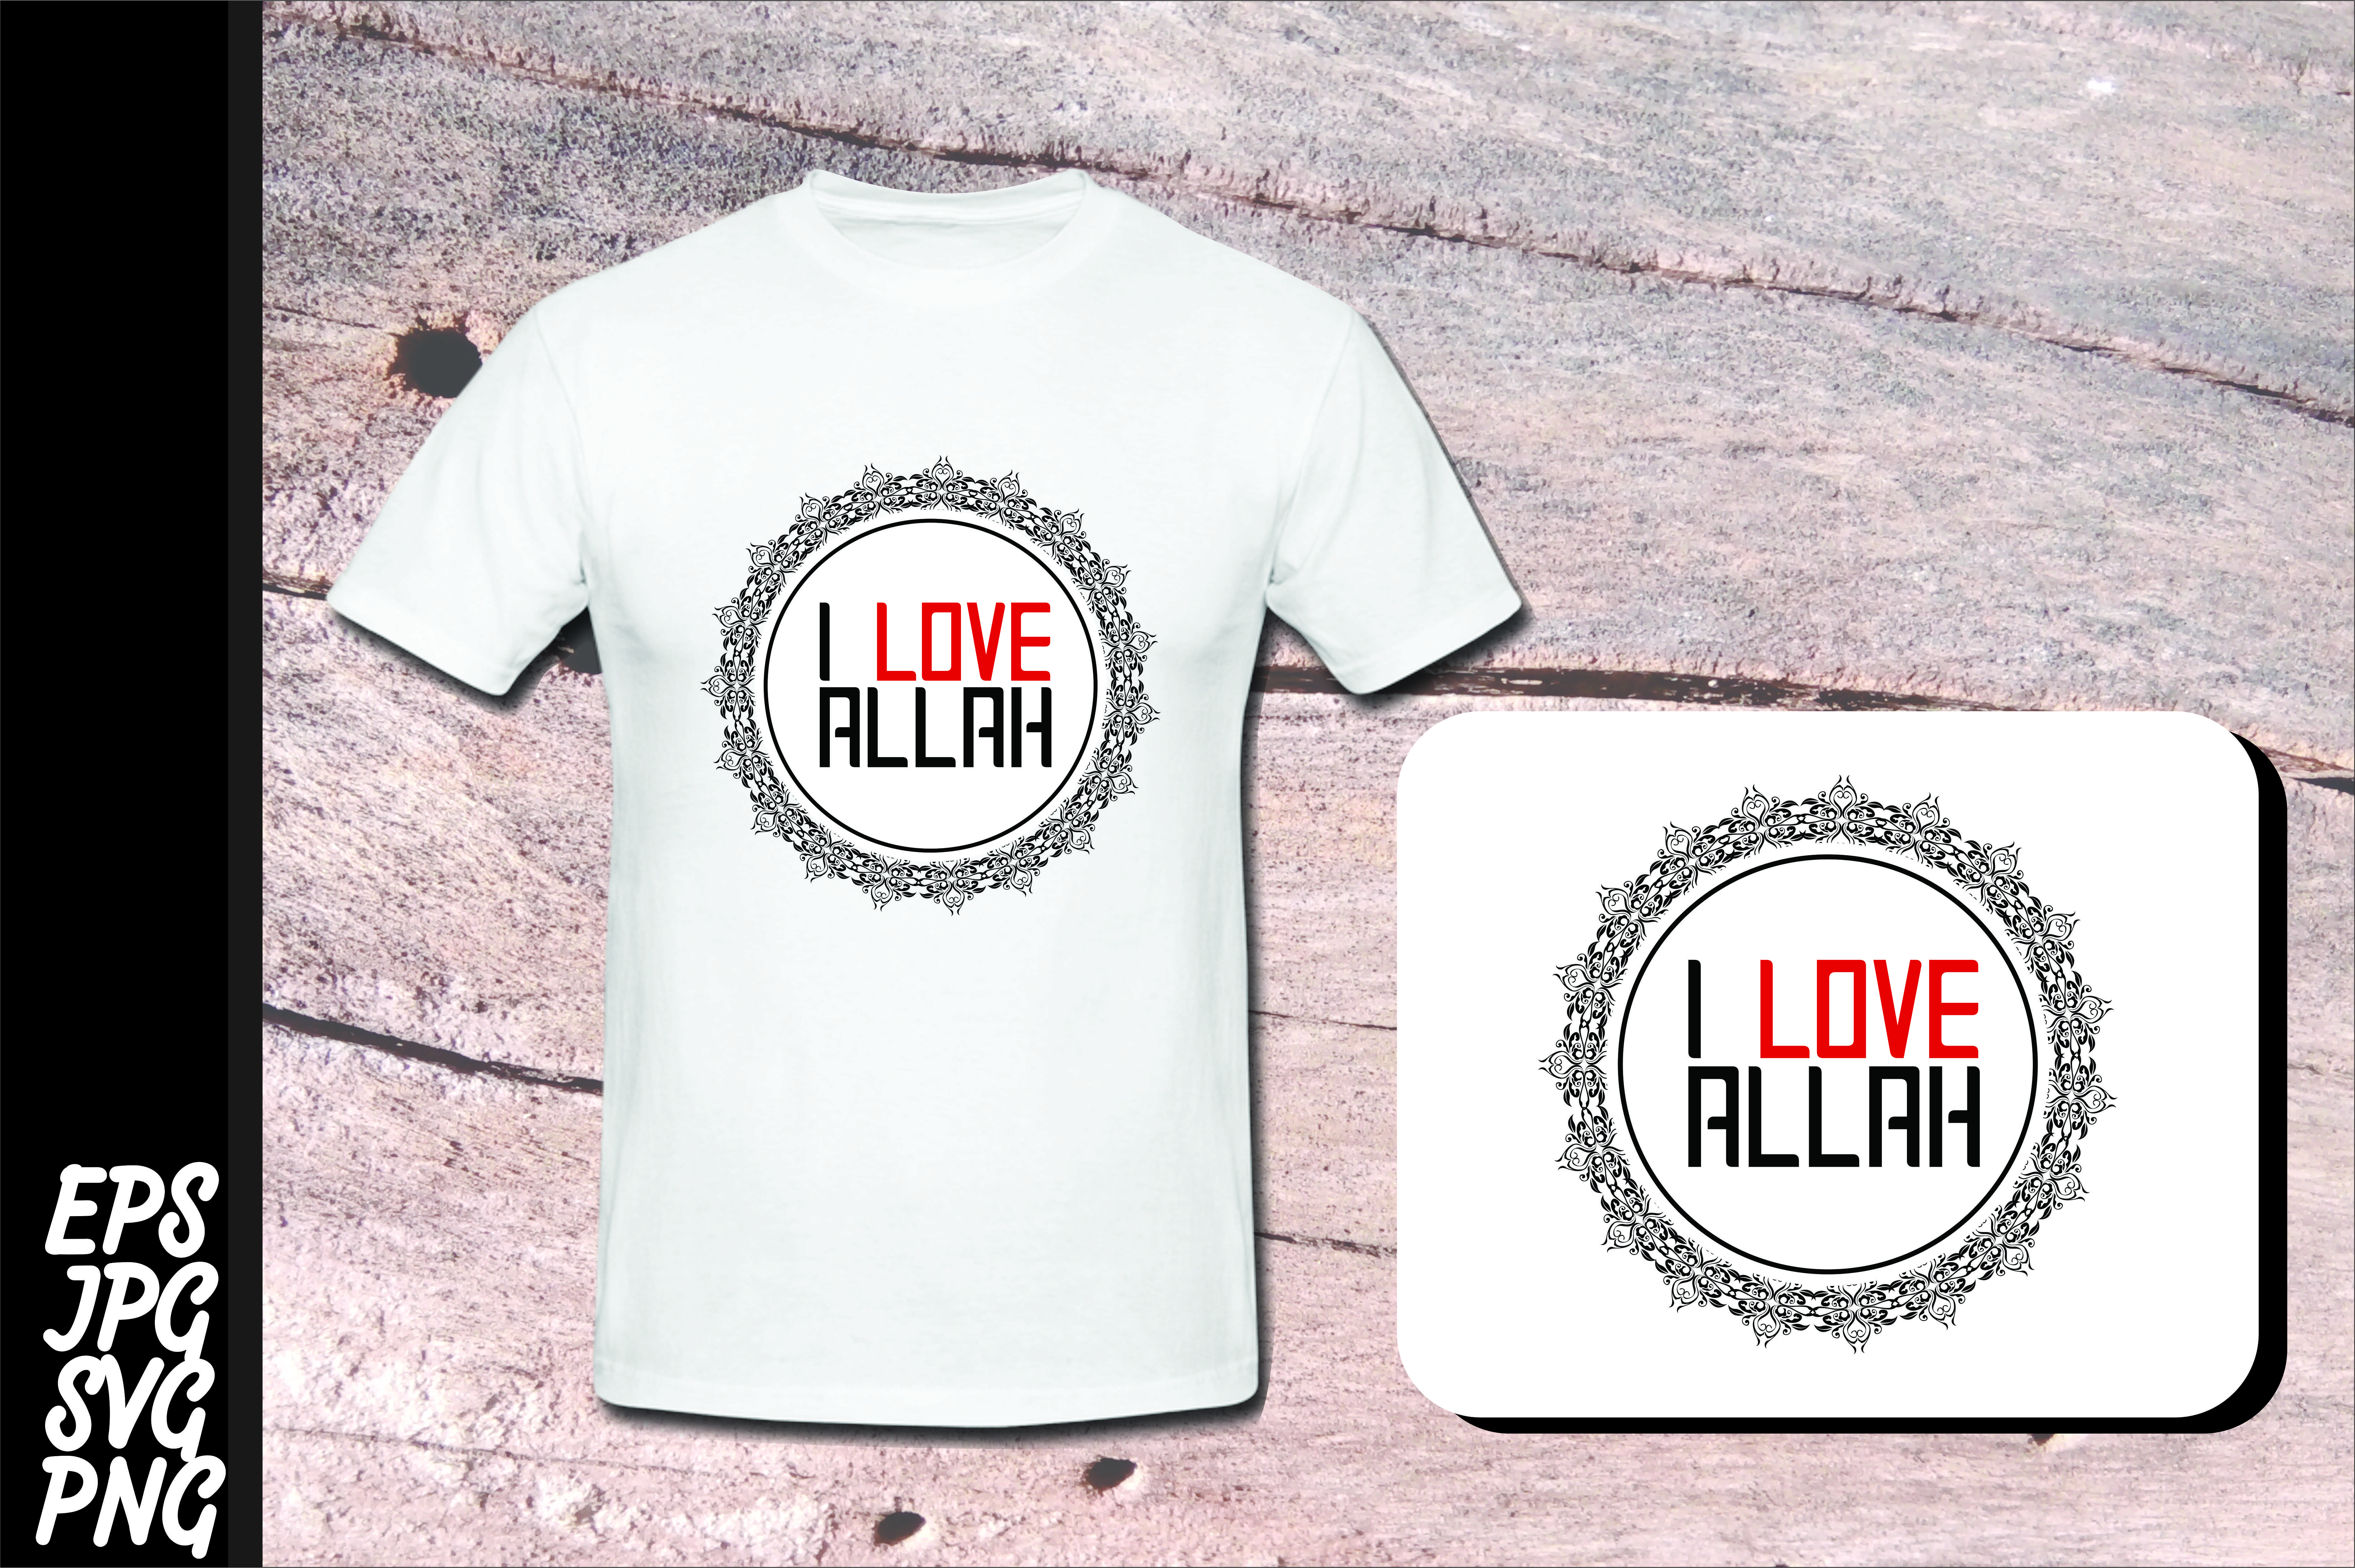 Download Free Islam Quote I Love Allah Svg Graphic By Arief Sapta Adjie for Cricut Explore, Silhouette and other cutting machines.